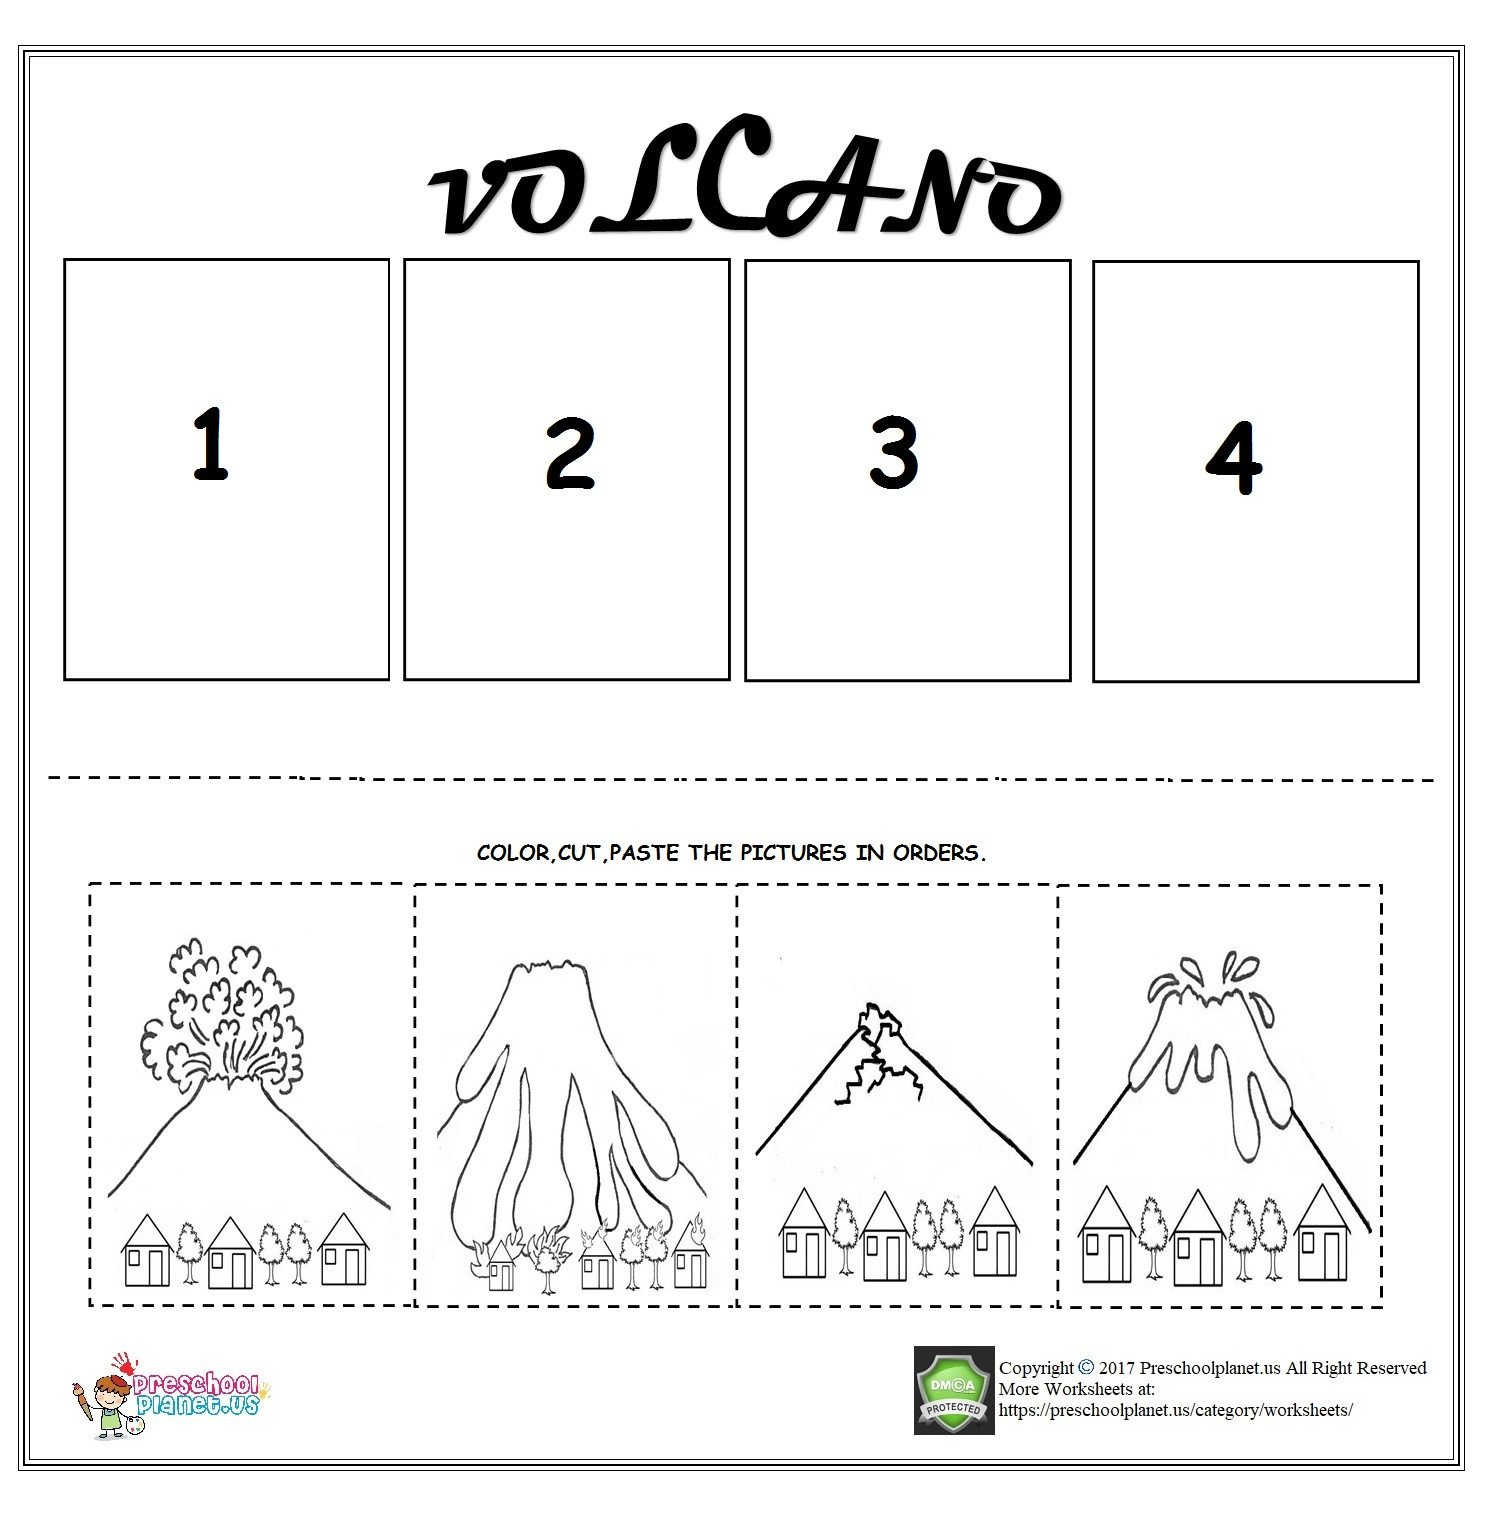 Sequencing Pictures Worksheet Volcano Sequencing Worksheet for Kids – Preschoolplanet